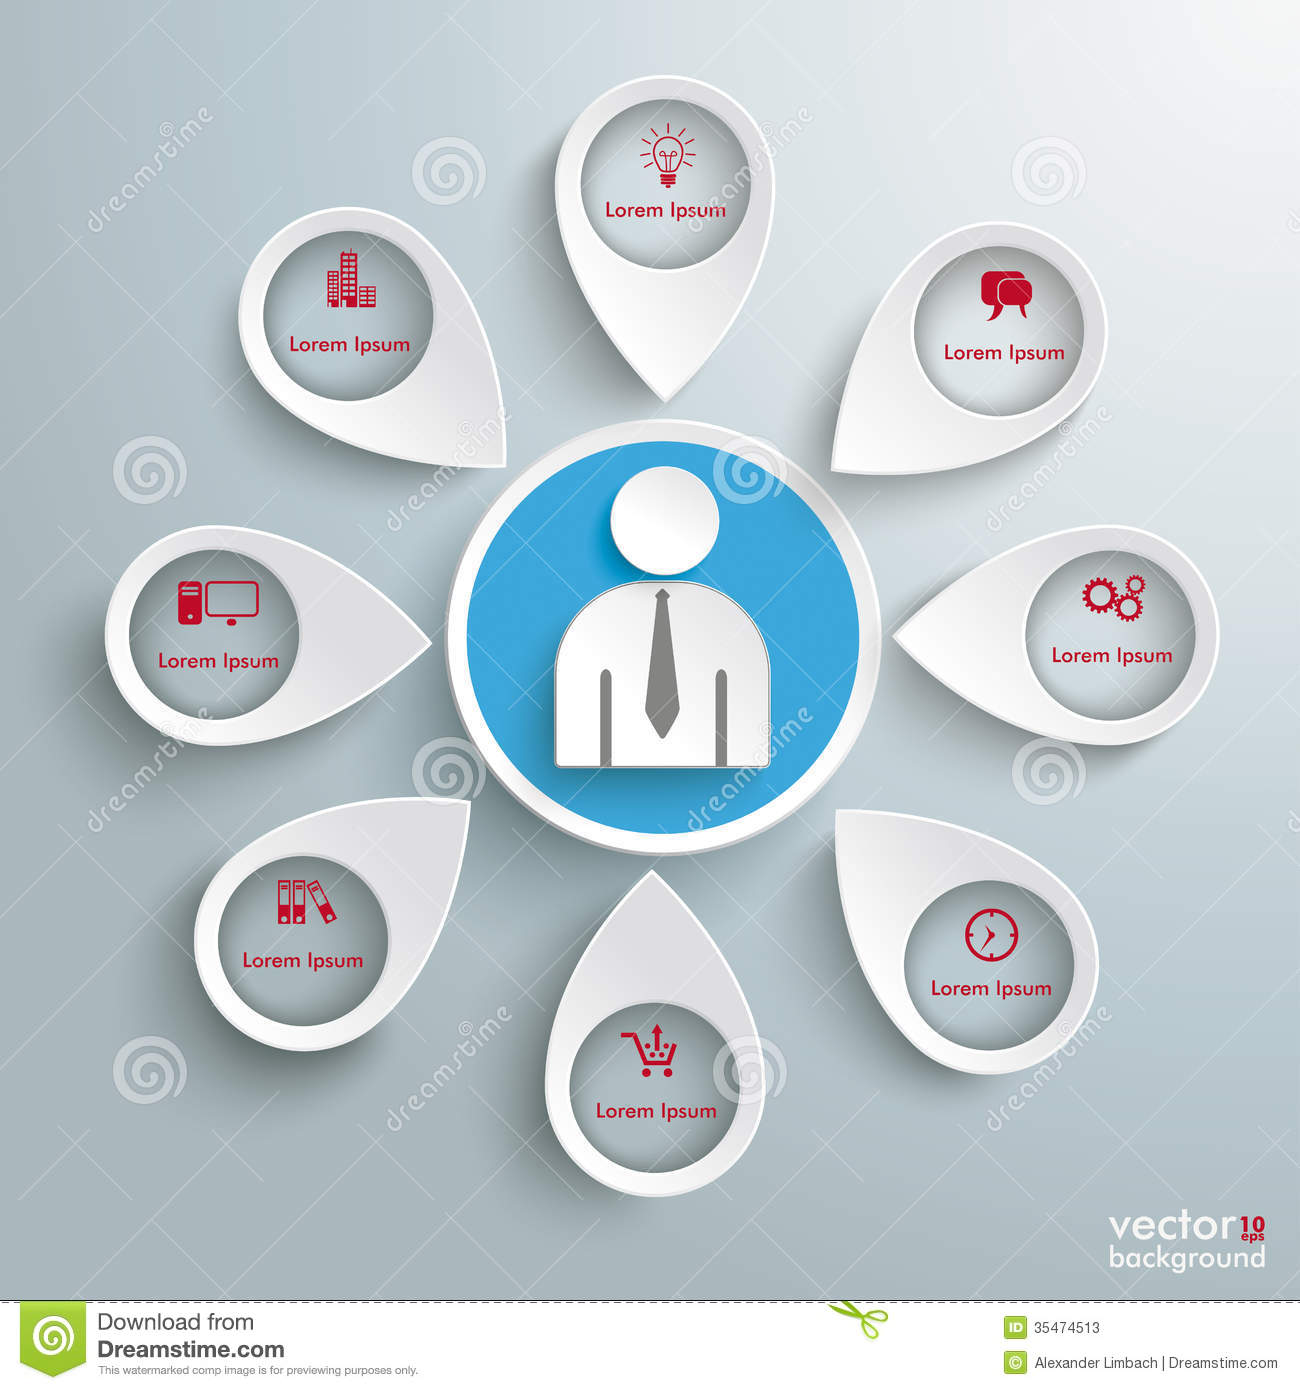 Background image location - 8 Location Markers Human Infographic Piad Stock Photos